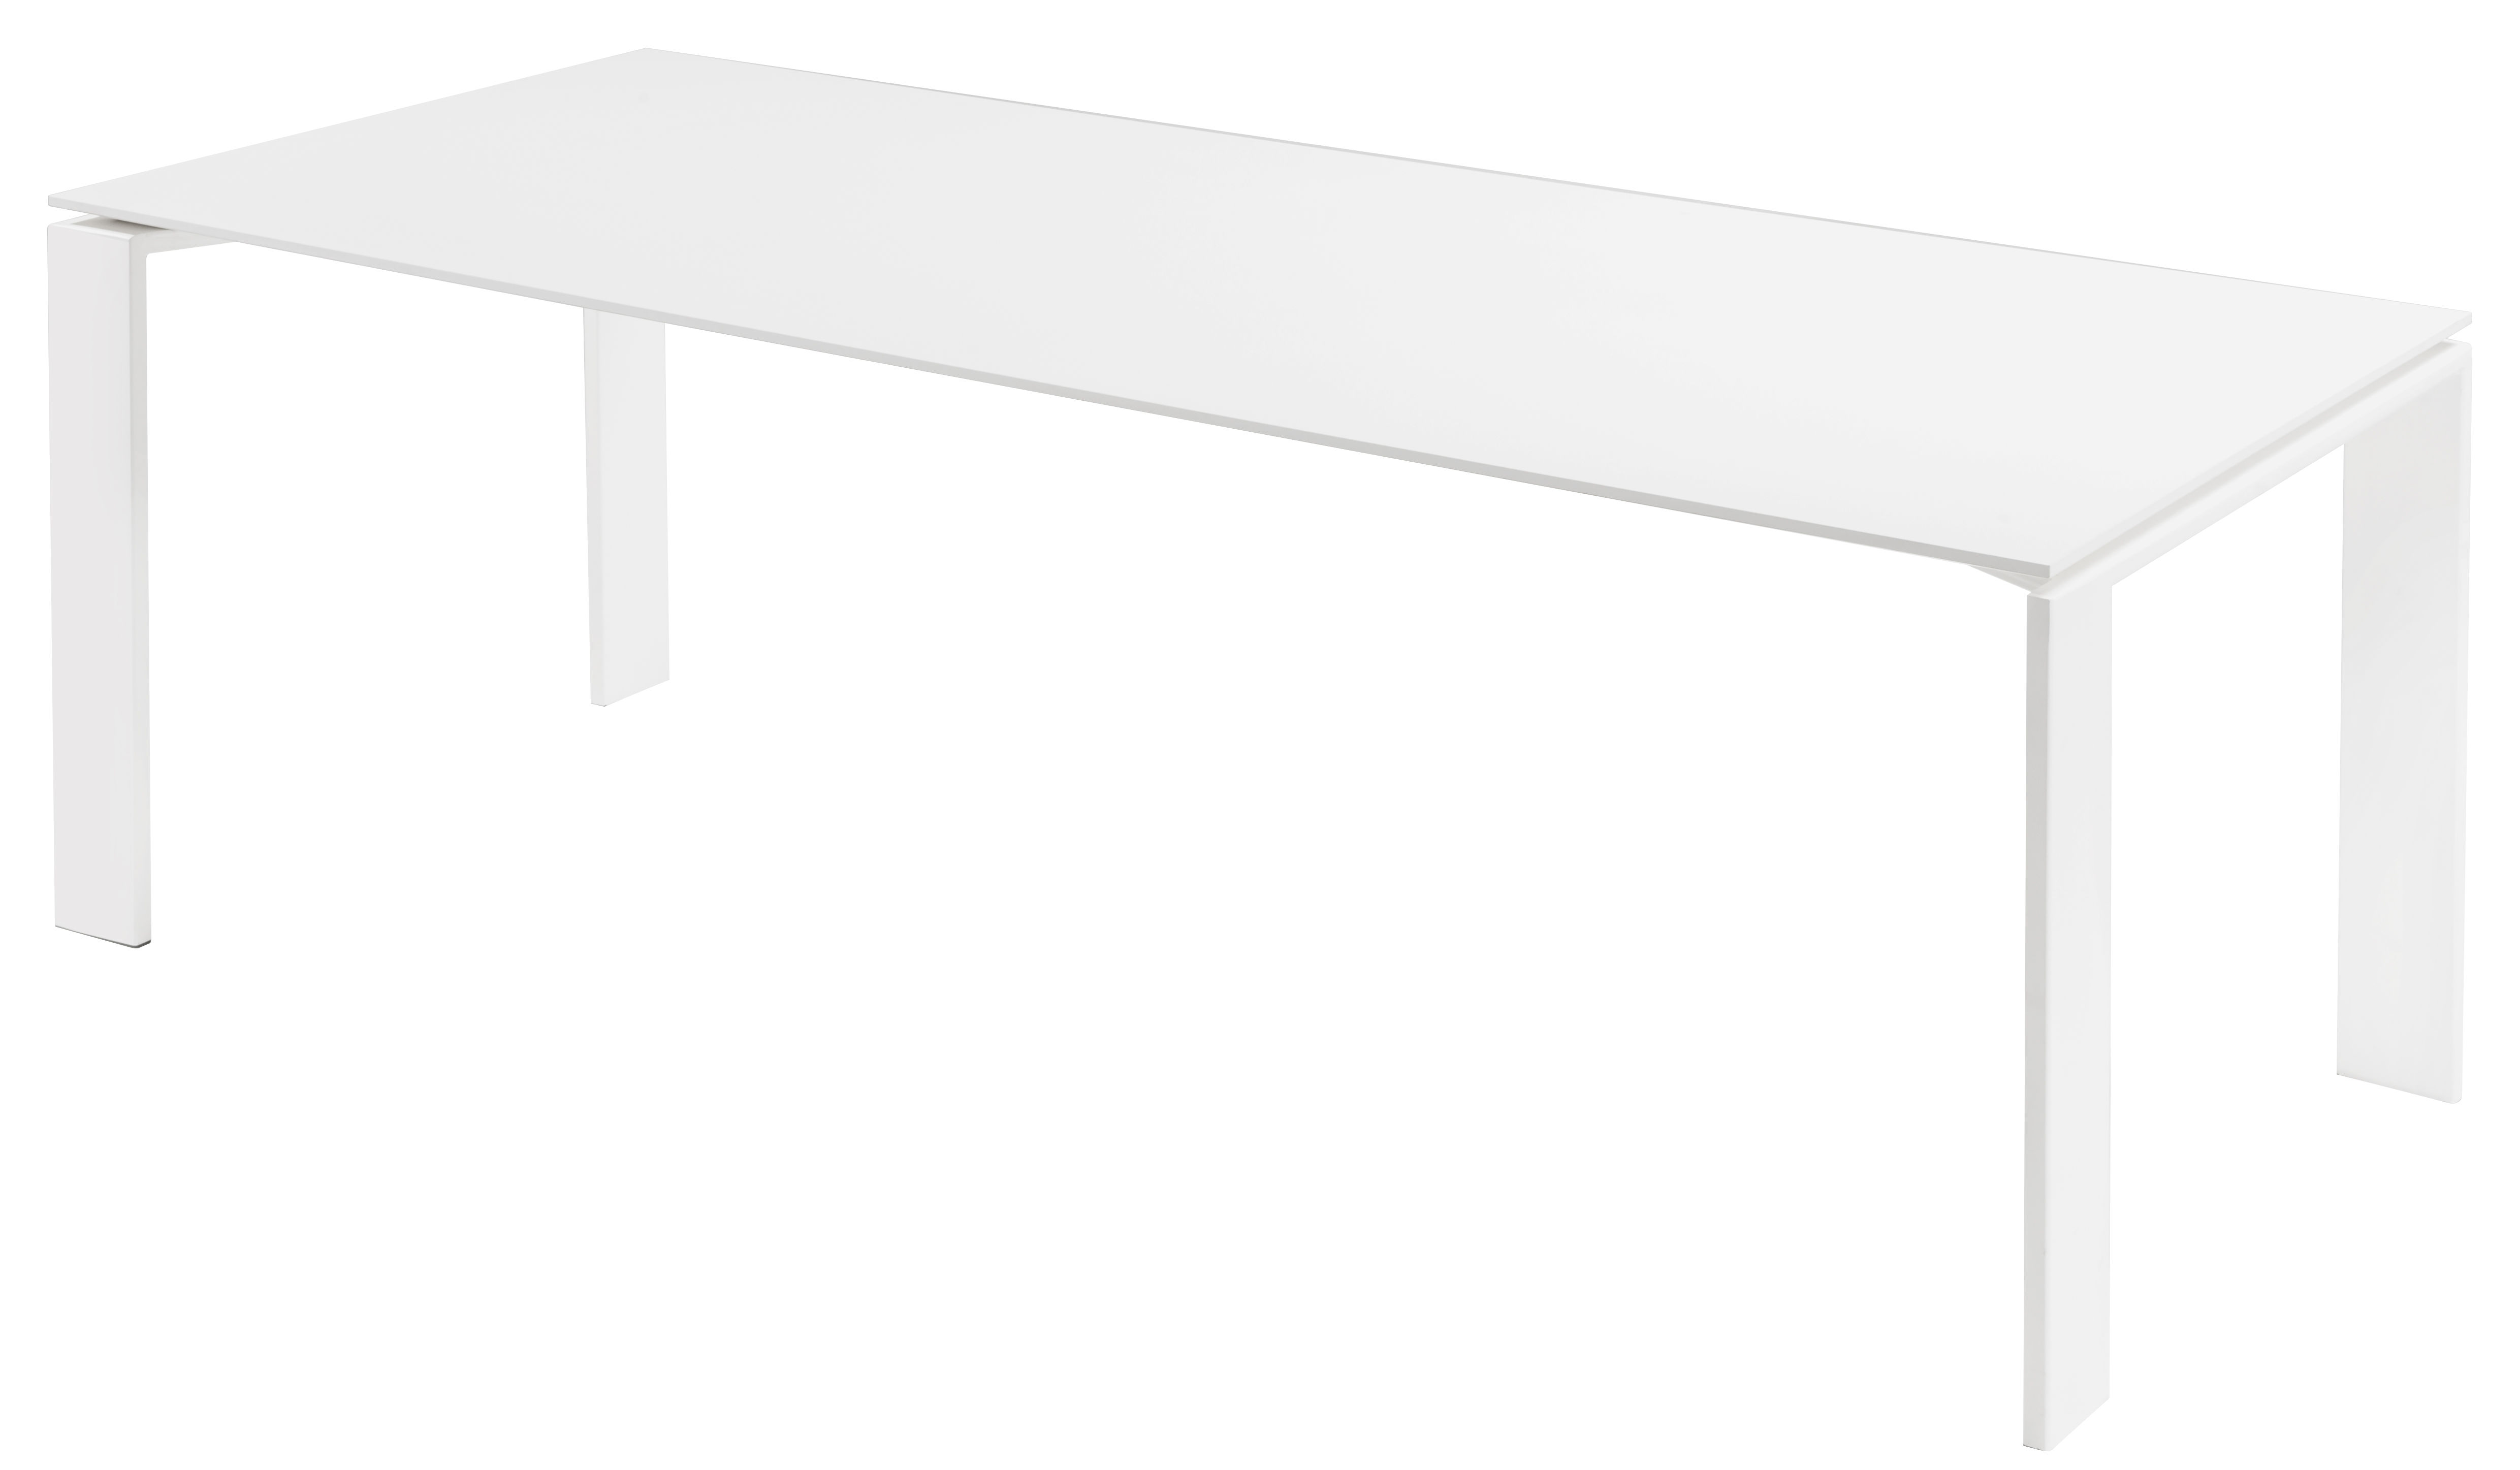 Outdoor - Garden Tables - Four Outdoor Rectangular table by Kartell - L 190 cm / White - Varnished steel